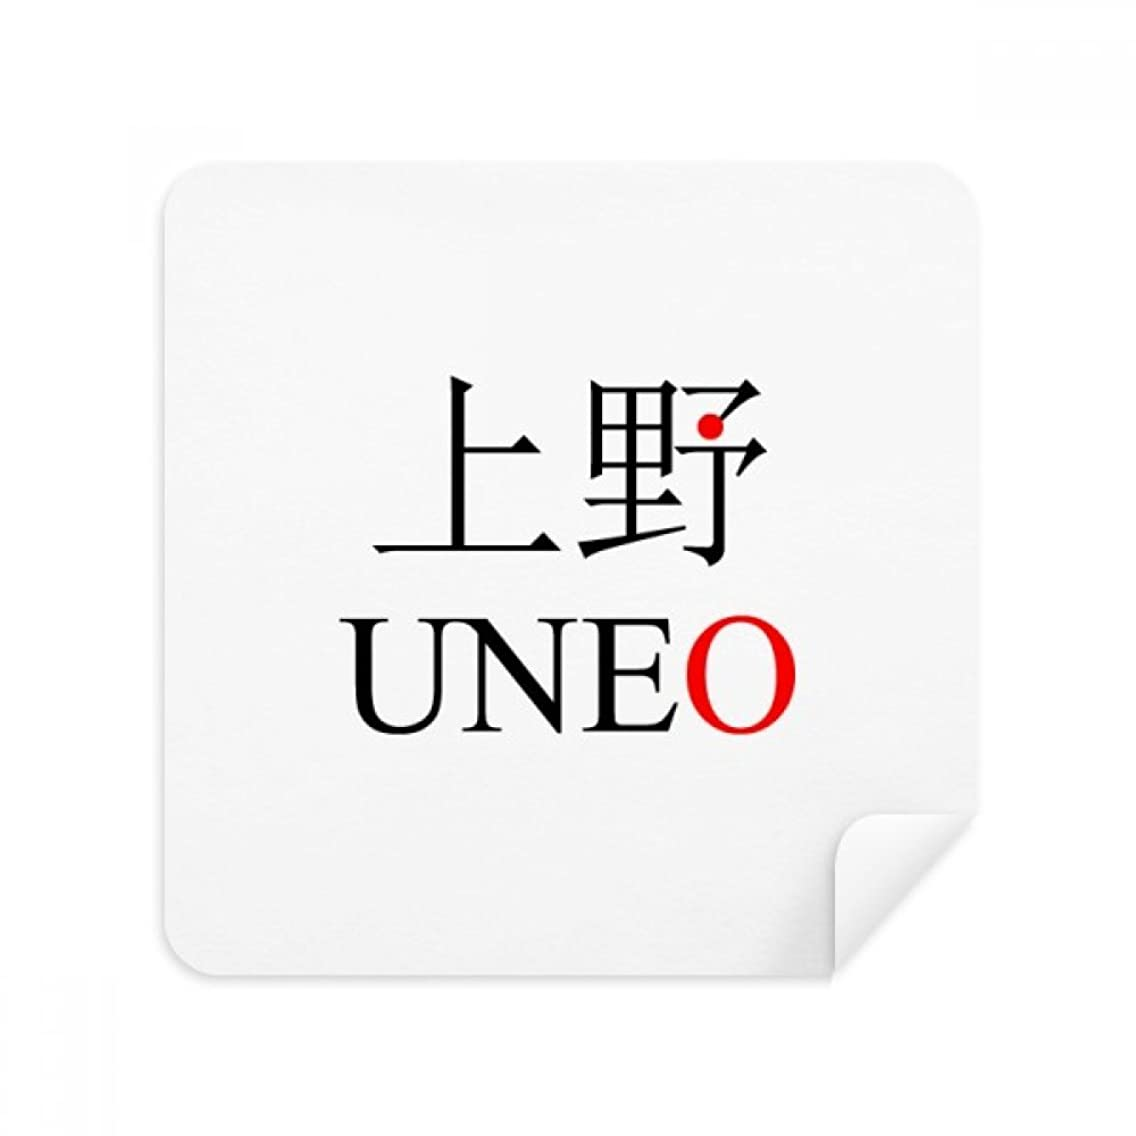 Uneo Japaness City Name Red Sun Flag Glasses Cleaning Cloth Phone Screen Cleaner Suede Fabric 2pcs